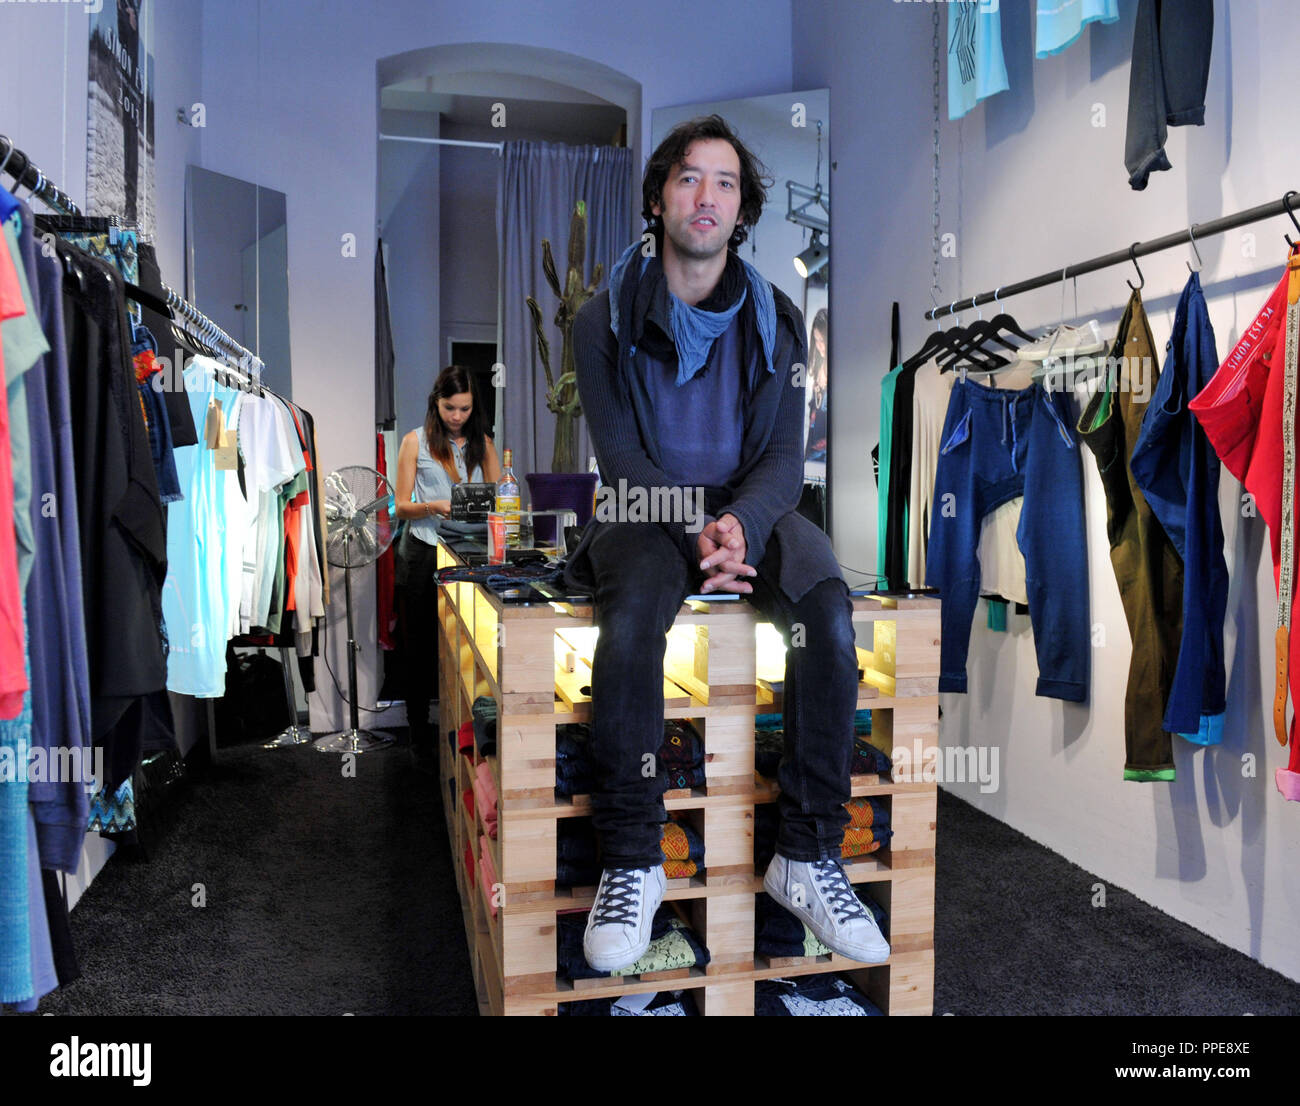 af87949f36b Andreas Bernhard, co-founder and co-owner of the Munich-based fashion